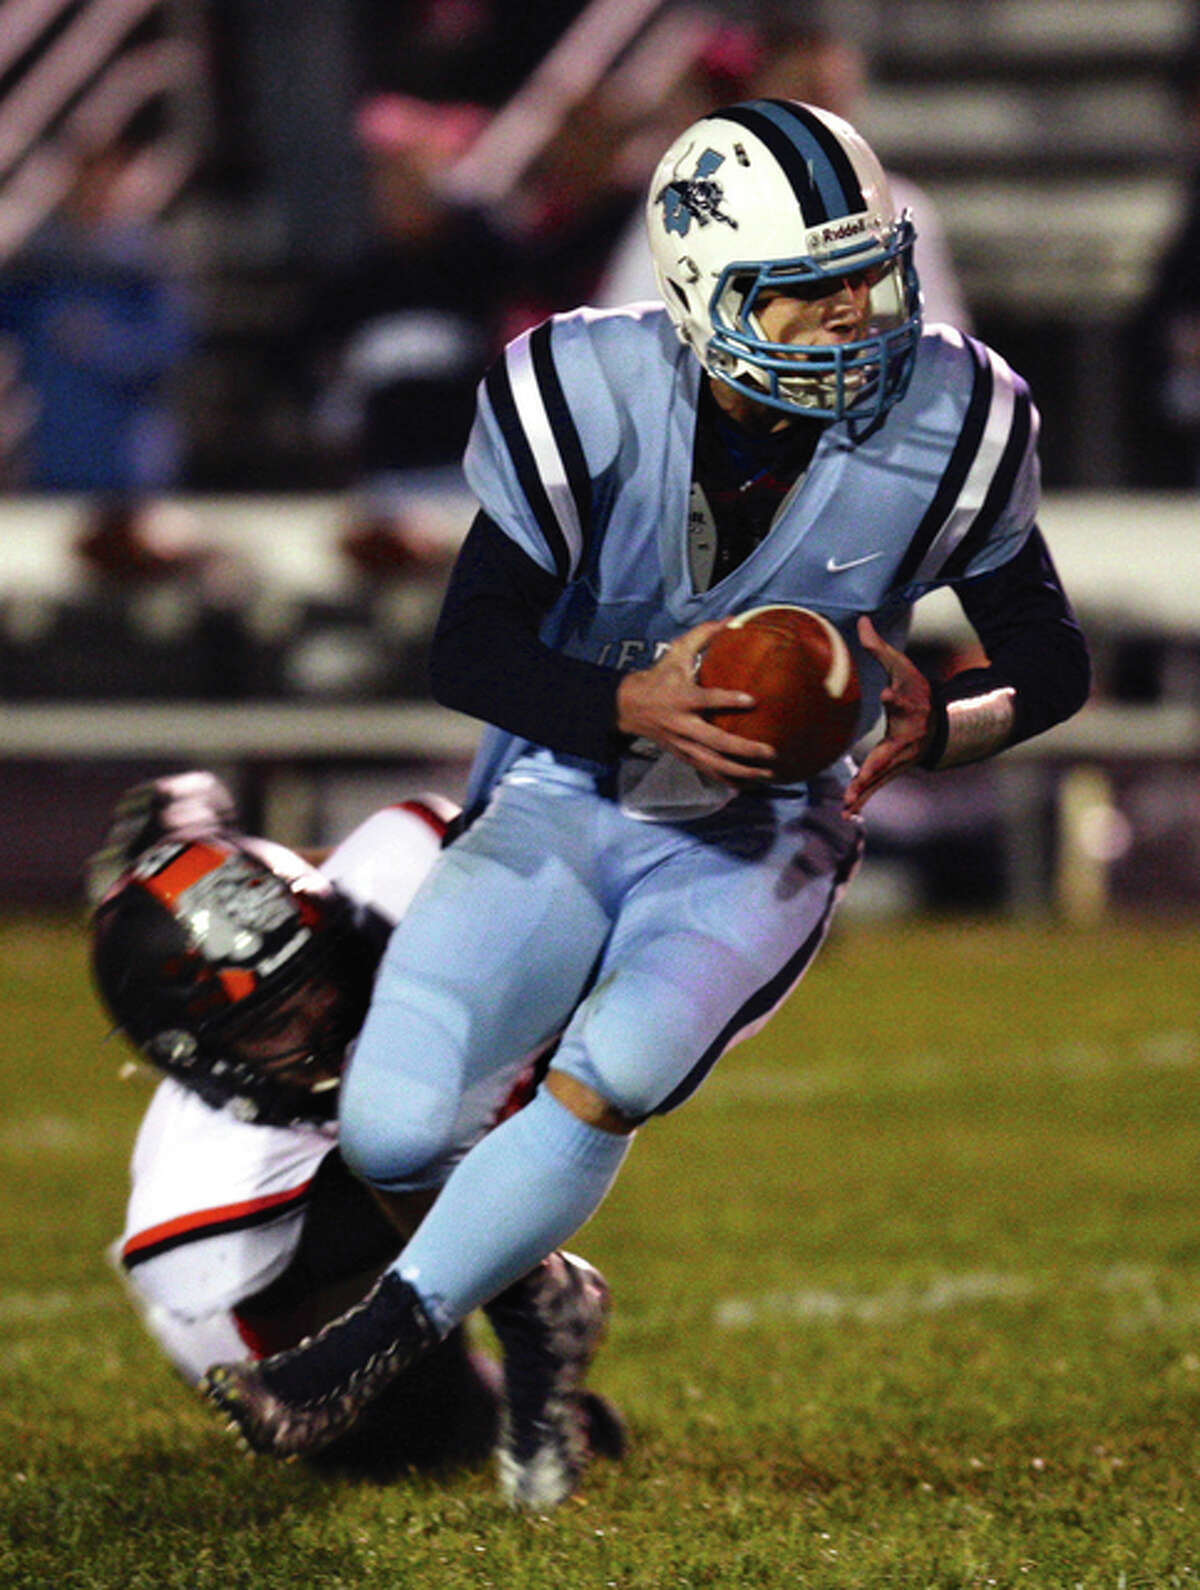 Jersey quarterback Drew Sauerwein ran for a tochdown and threw or two others in his team's overtime loss to Waterloo Friday. He was 11 of 22 for 210 yards through the air.